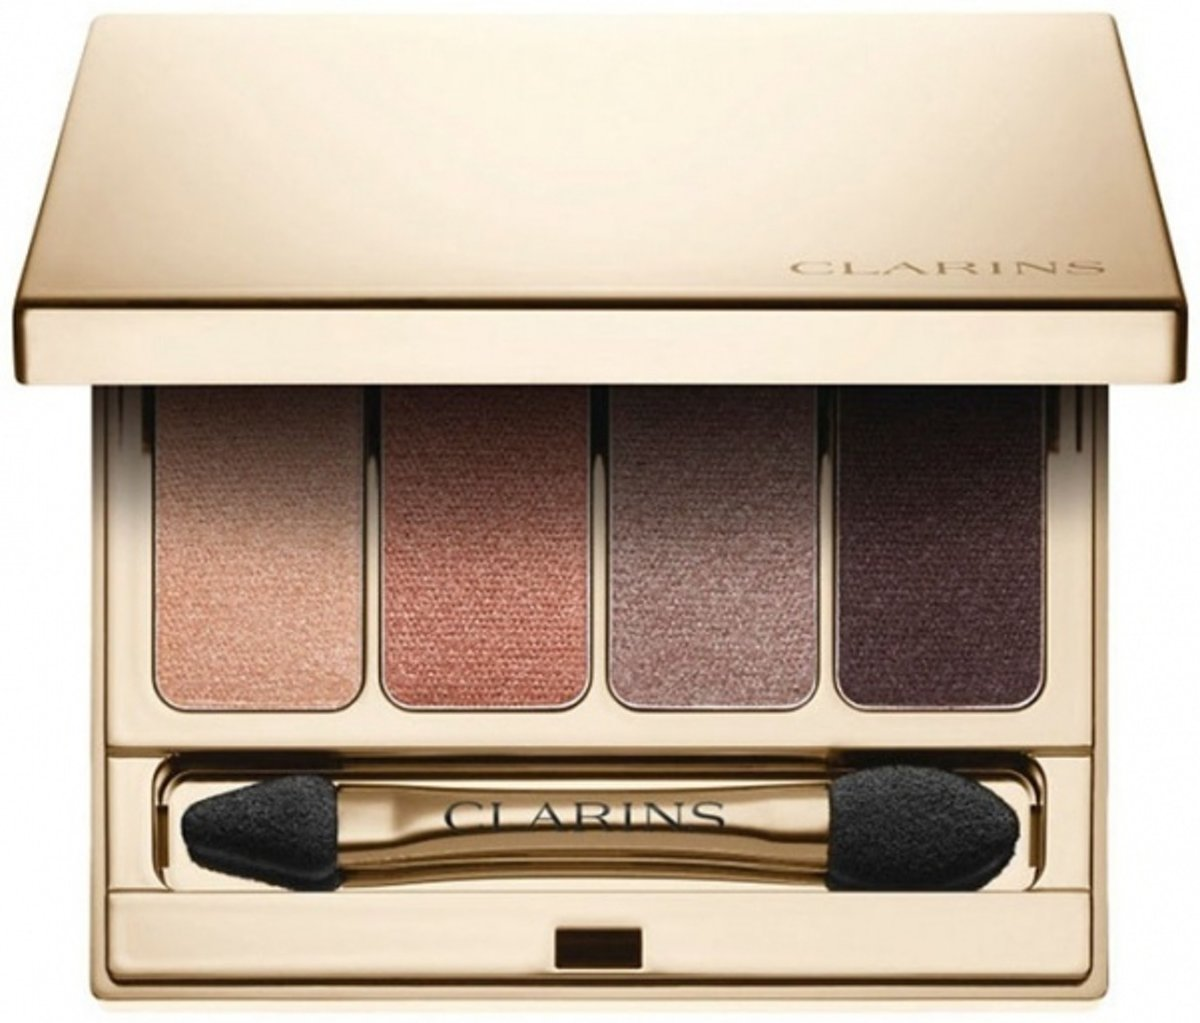 Clarins Palette 4 Couleurs Oogschaduwpalette 6.9 gr. - 02 - Rosewood